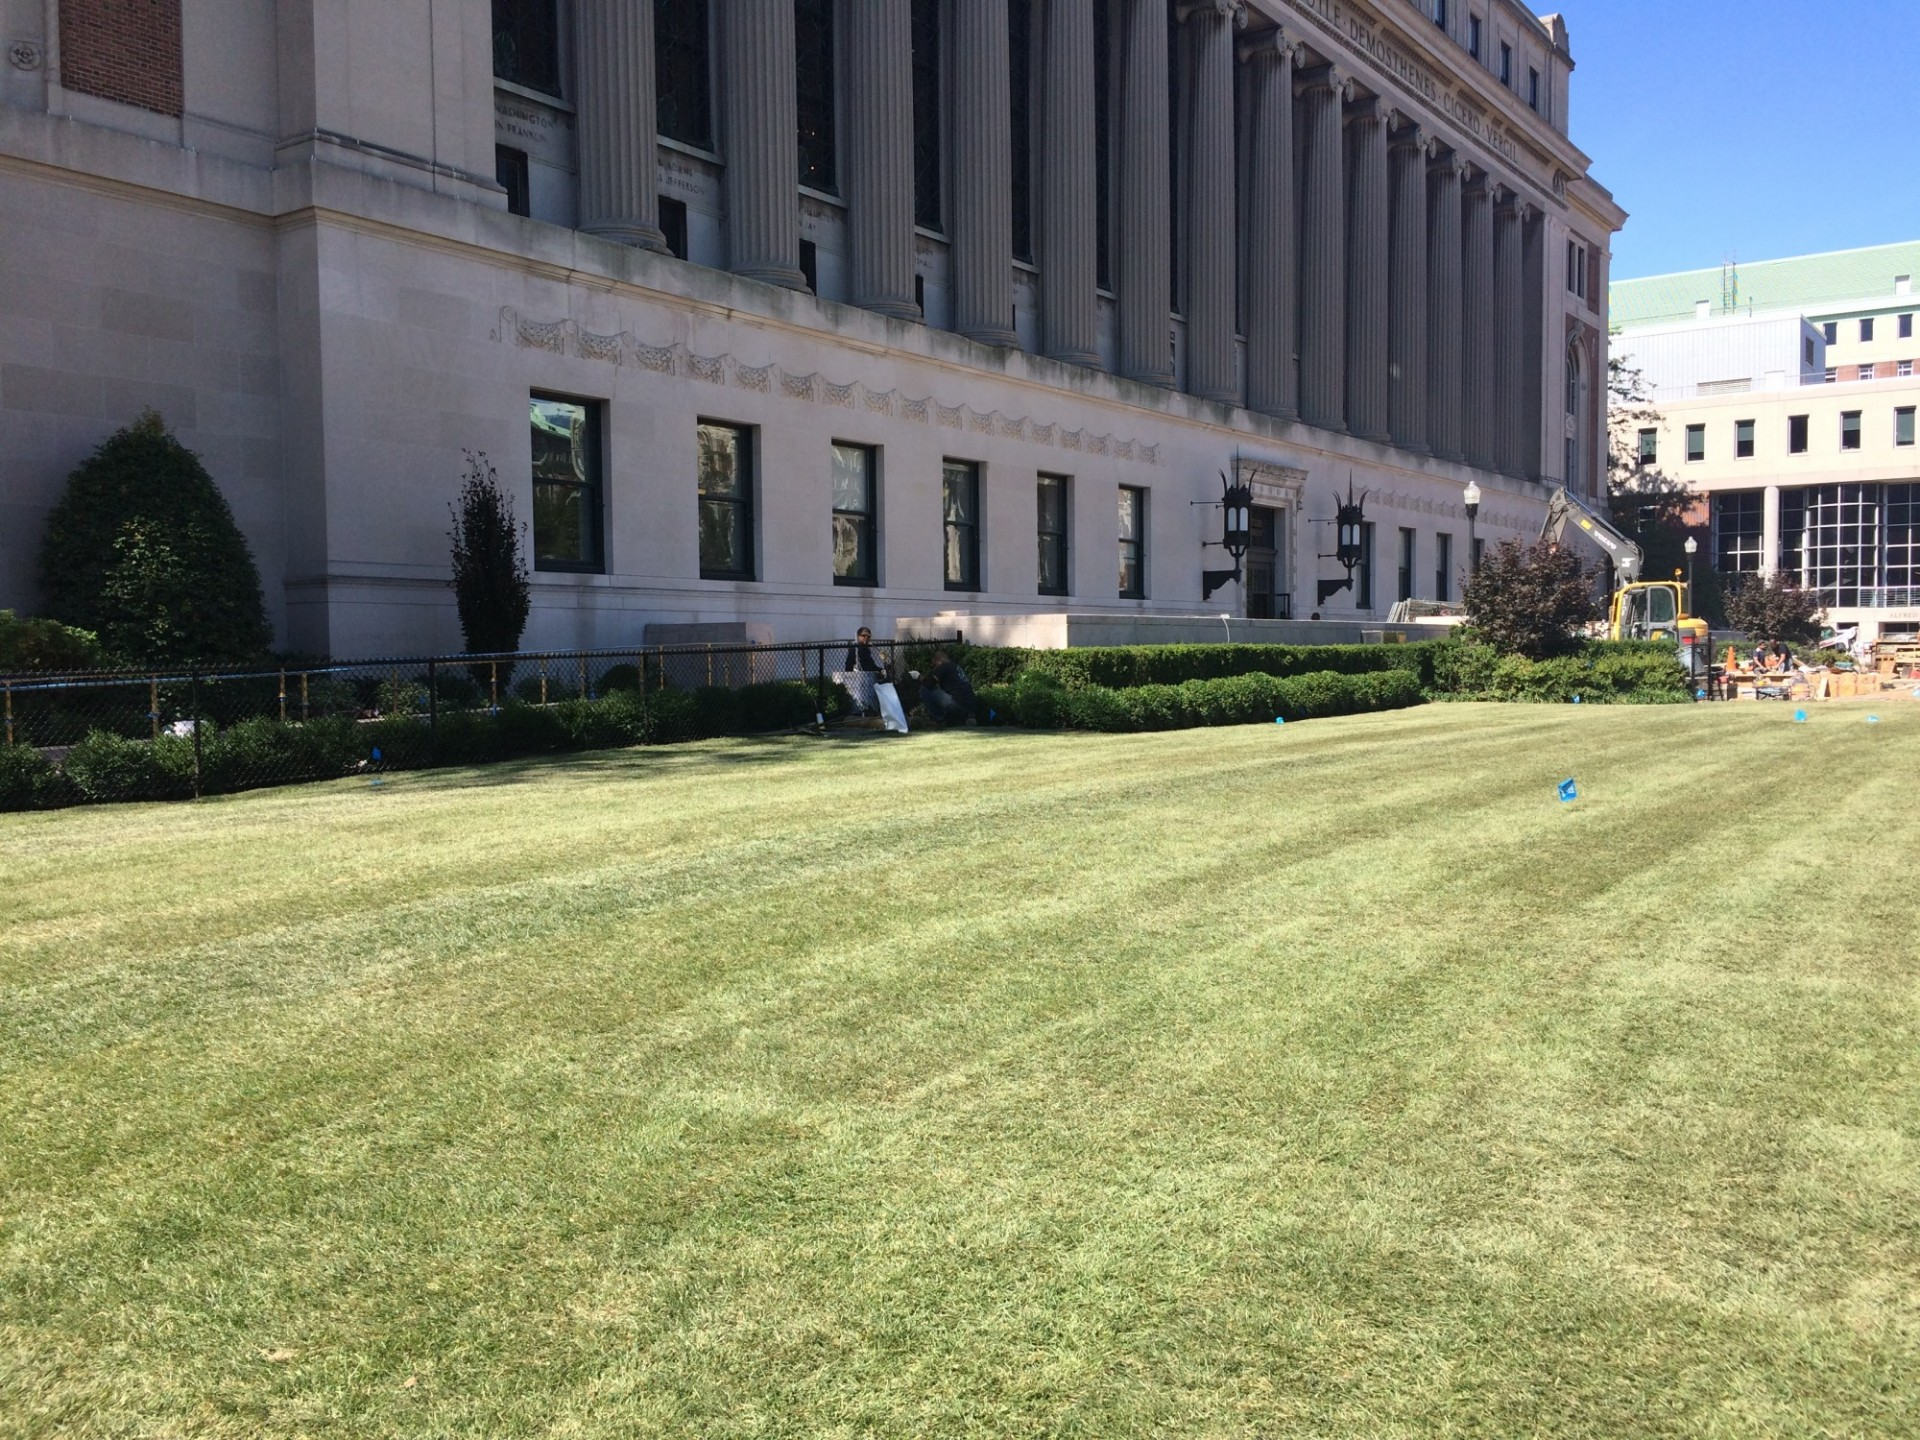 New sod at the southern portion of South Lawn East (Photo from September 1, 2017)